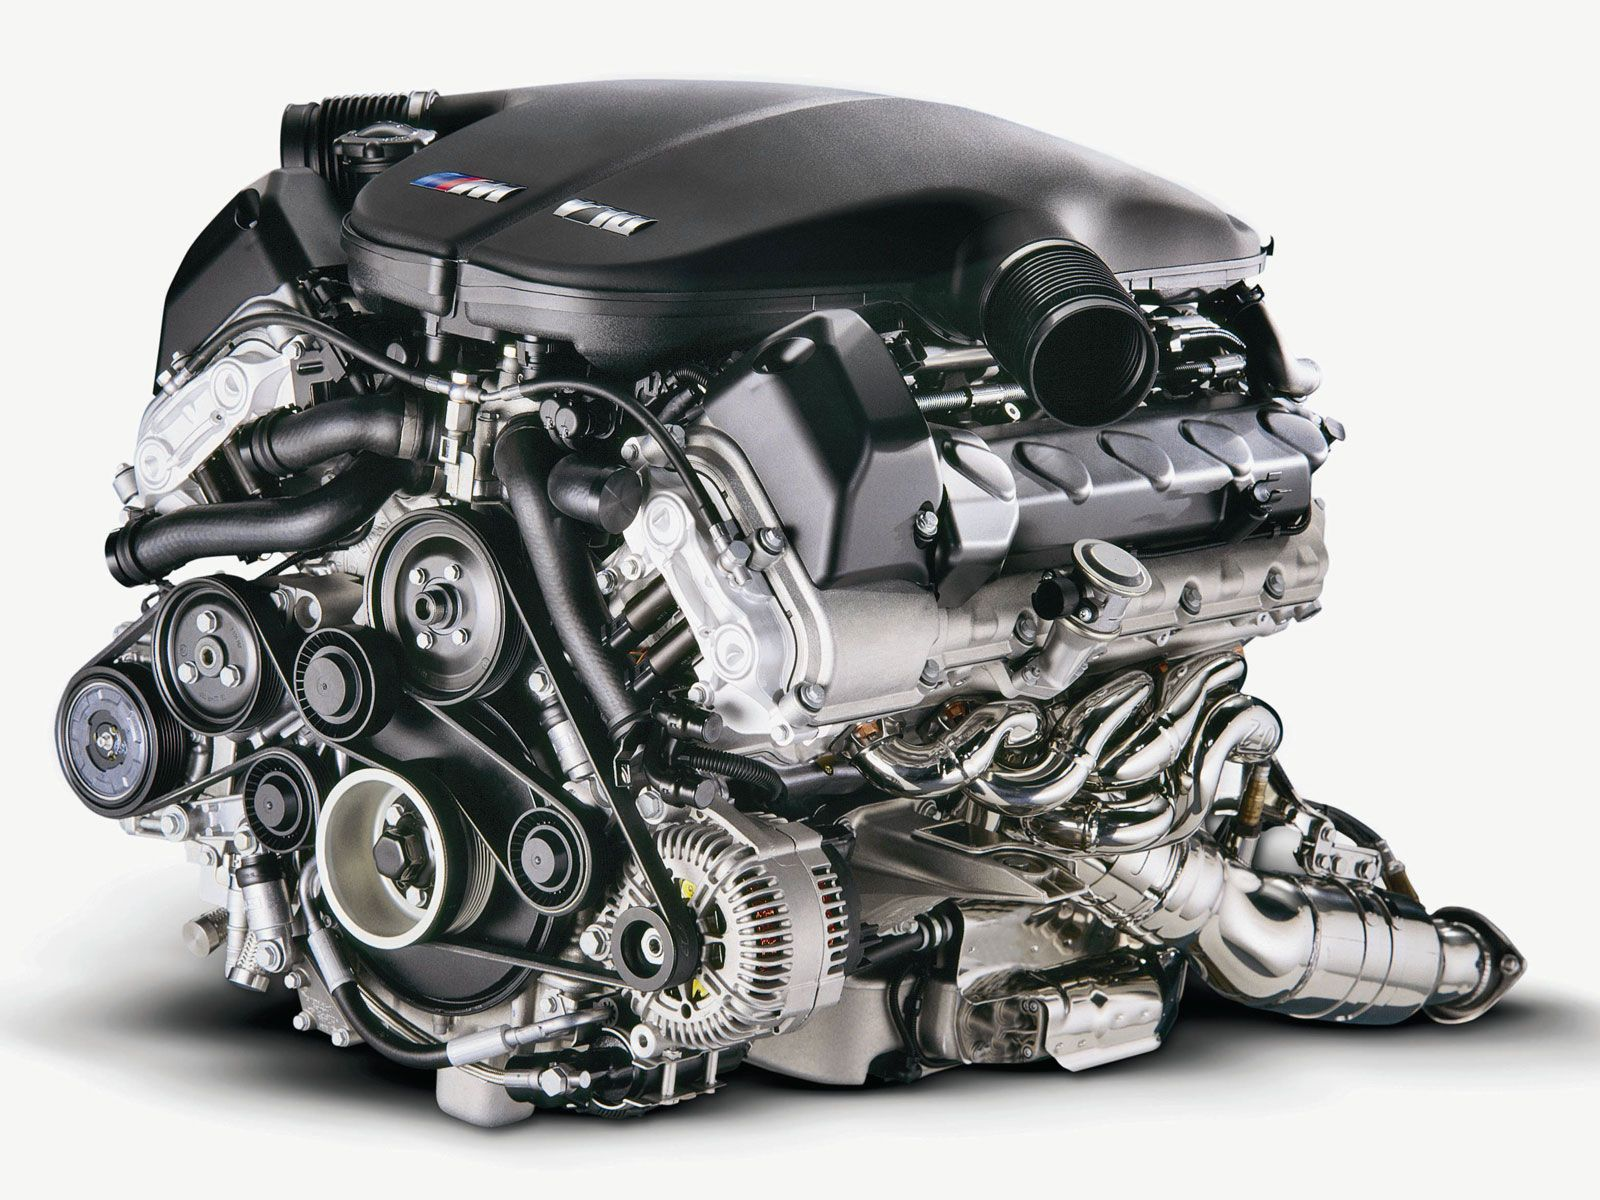 reconditioned engine for sale bmw engines for sale engine for sale